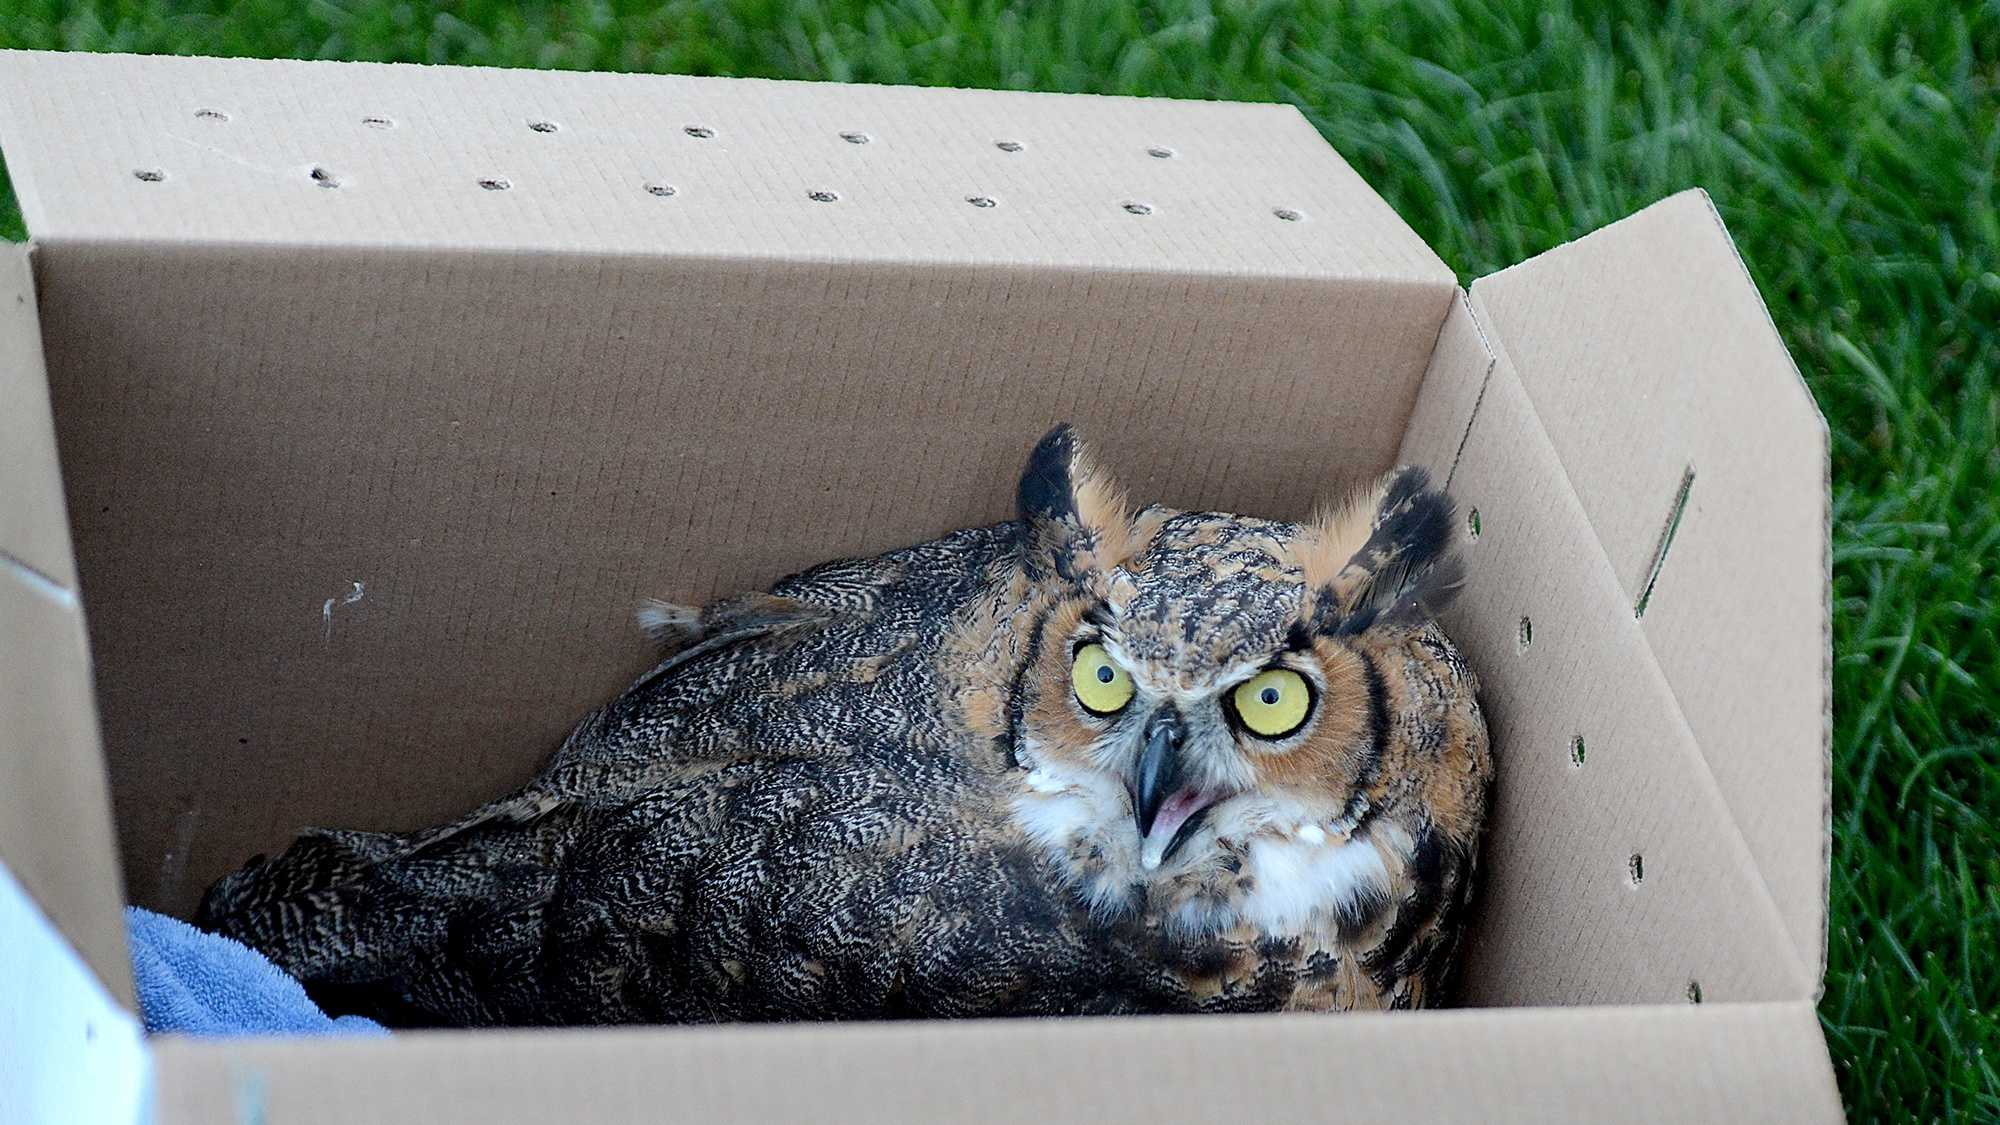 An adult female great horned owl, named Emma by campers at Meadowbrook Day Camp in Weston, sits it its box moments before release back into the wild Wednesday night. The owl was rescued from a soccer by Weston Police and Massachusetts Environmental Police on July 21, and nursed back to health at Cummings Veterinary Medical Center at Tufts University in North Grafton.